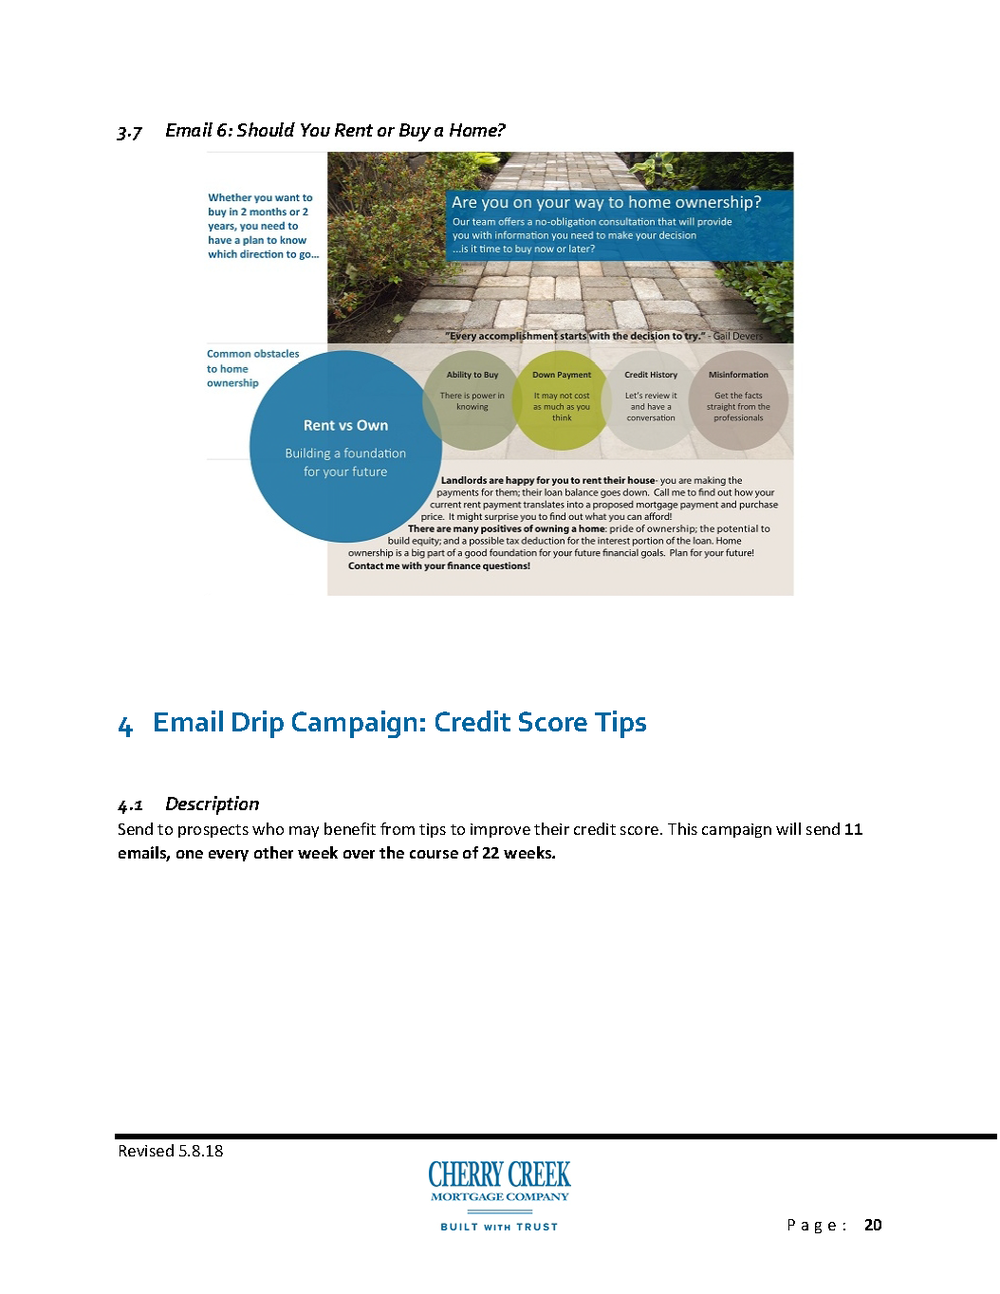 Jungo_Email_Drip_Campaigns-Consumers_D1O6plI_Page_020.png